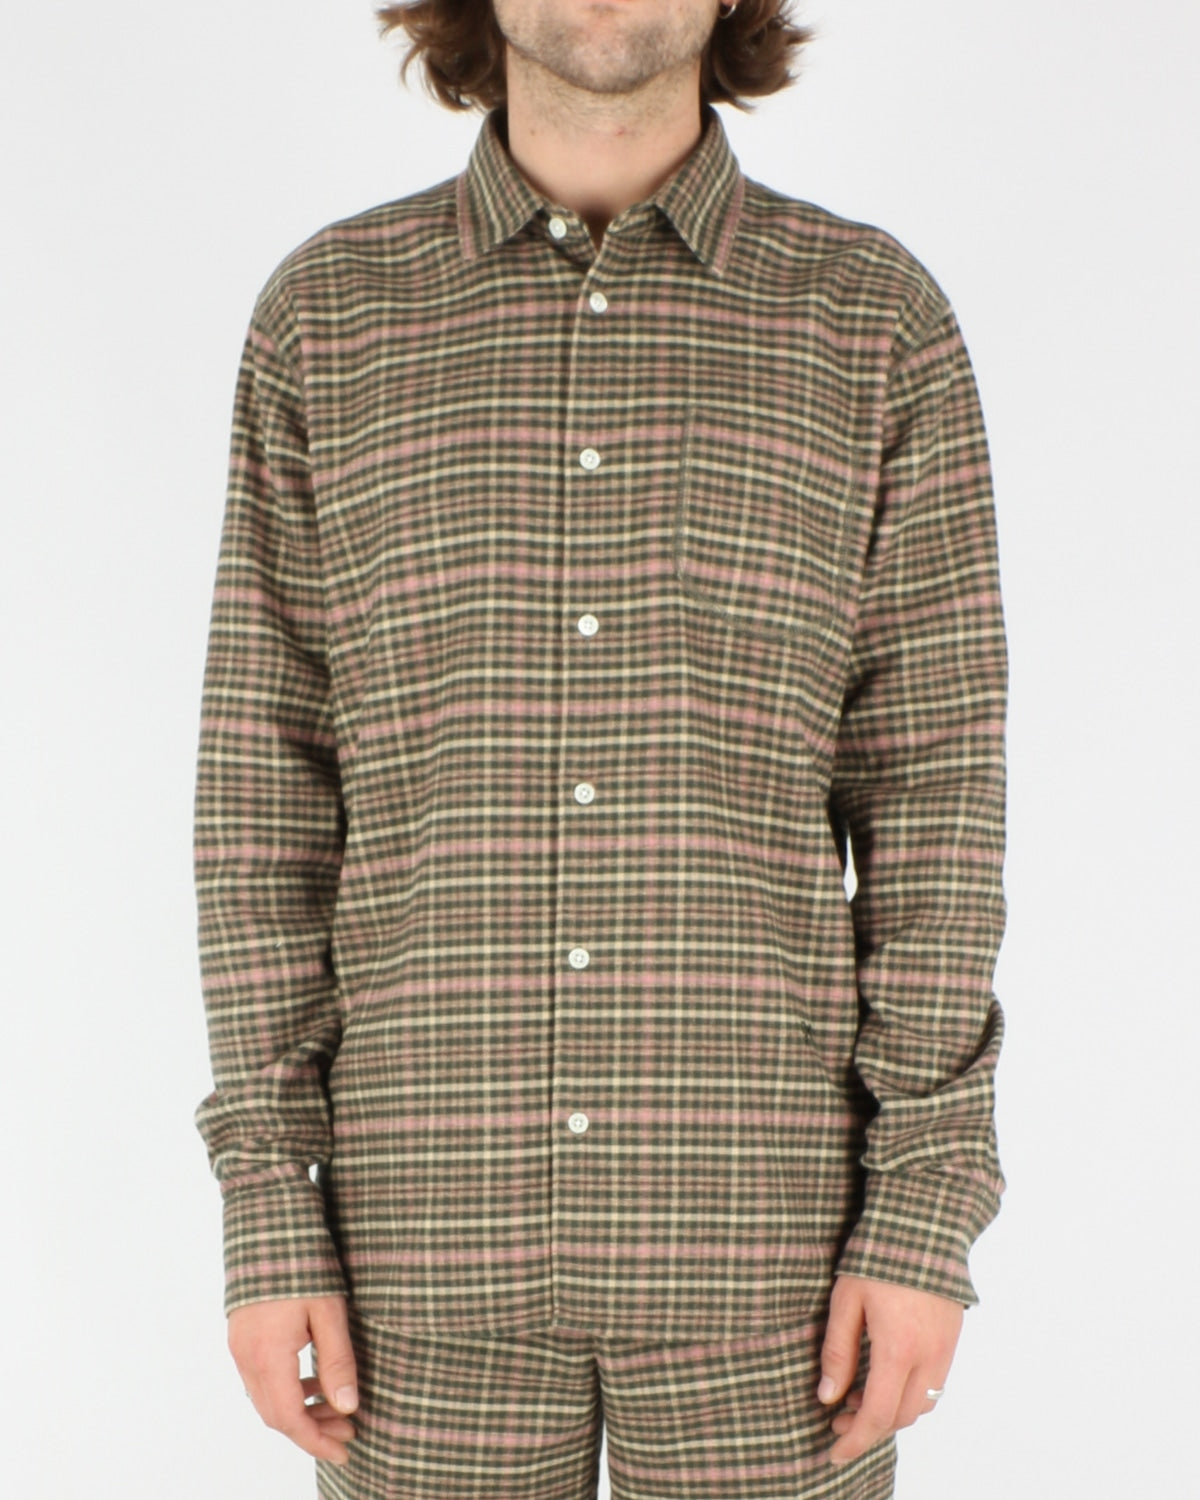 soulland_logan flannell shirt_multi_1_4